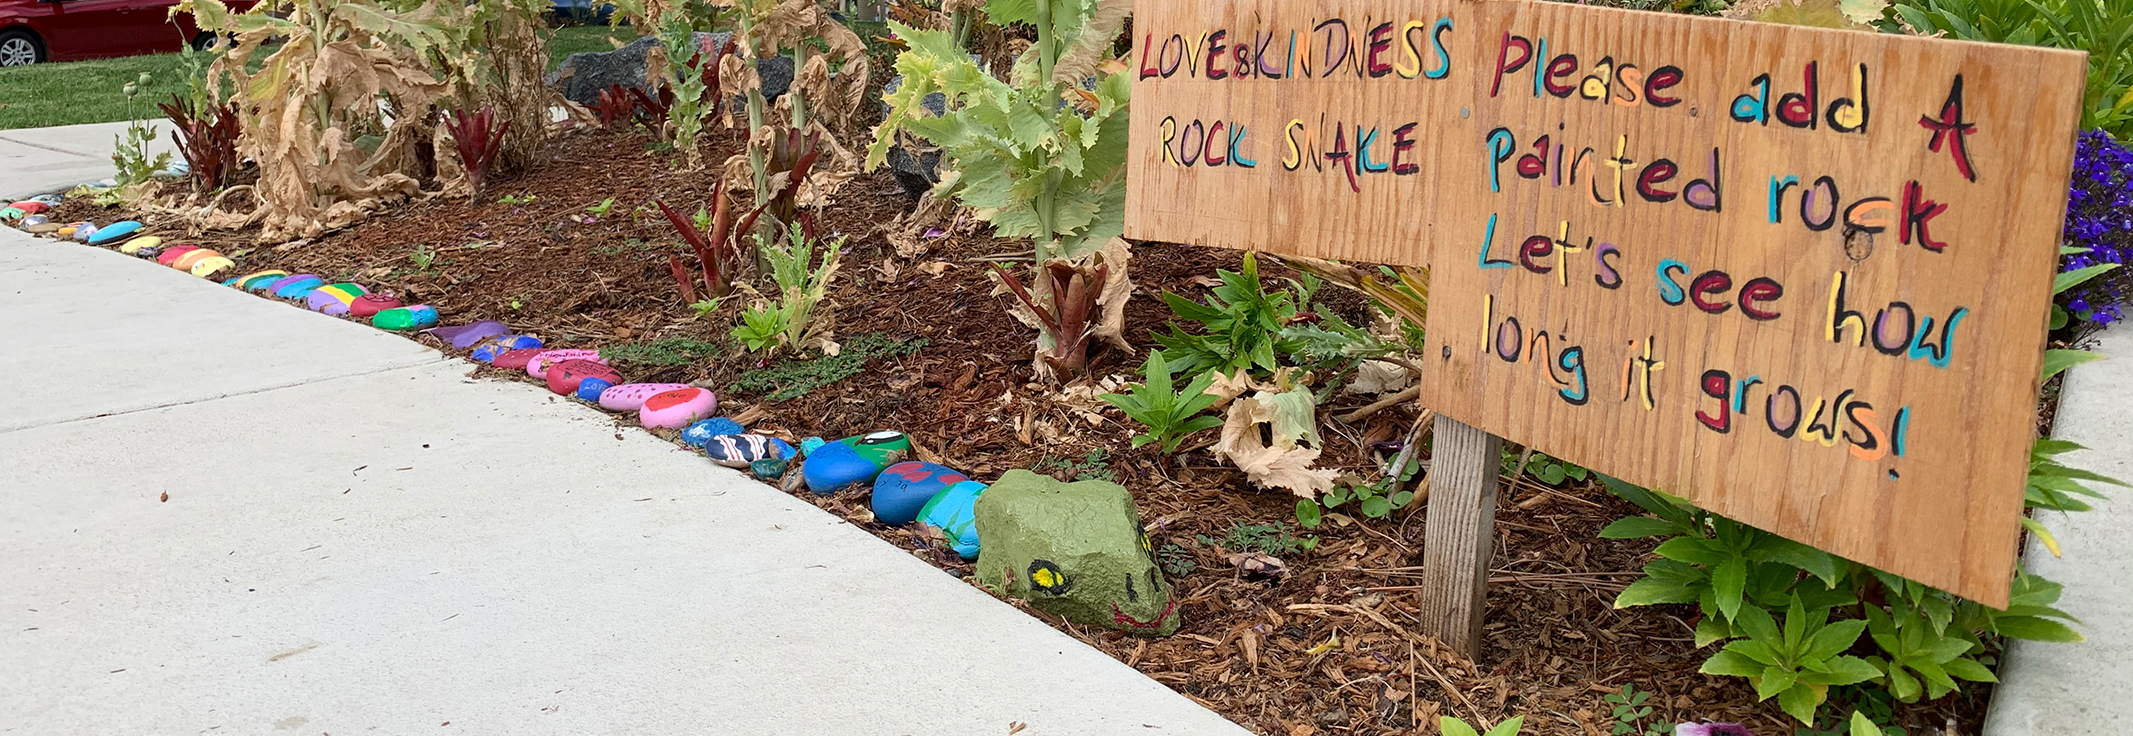 Colorful painted rocks lined up to form a snake in the garden outside UCI Extended Day Care Center. Sign reads Love and Kindness Rock Snake Please add a painted rock Let's see how long it grows!